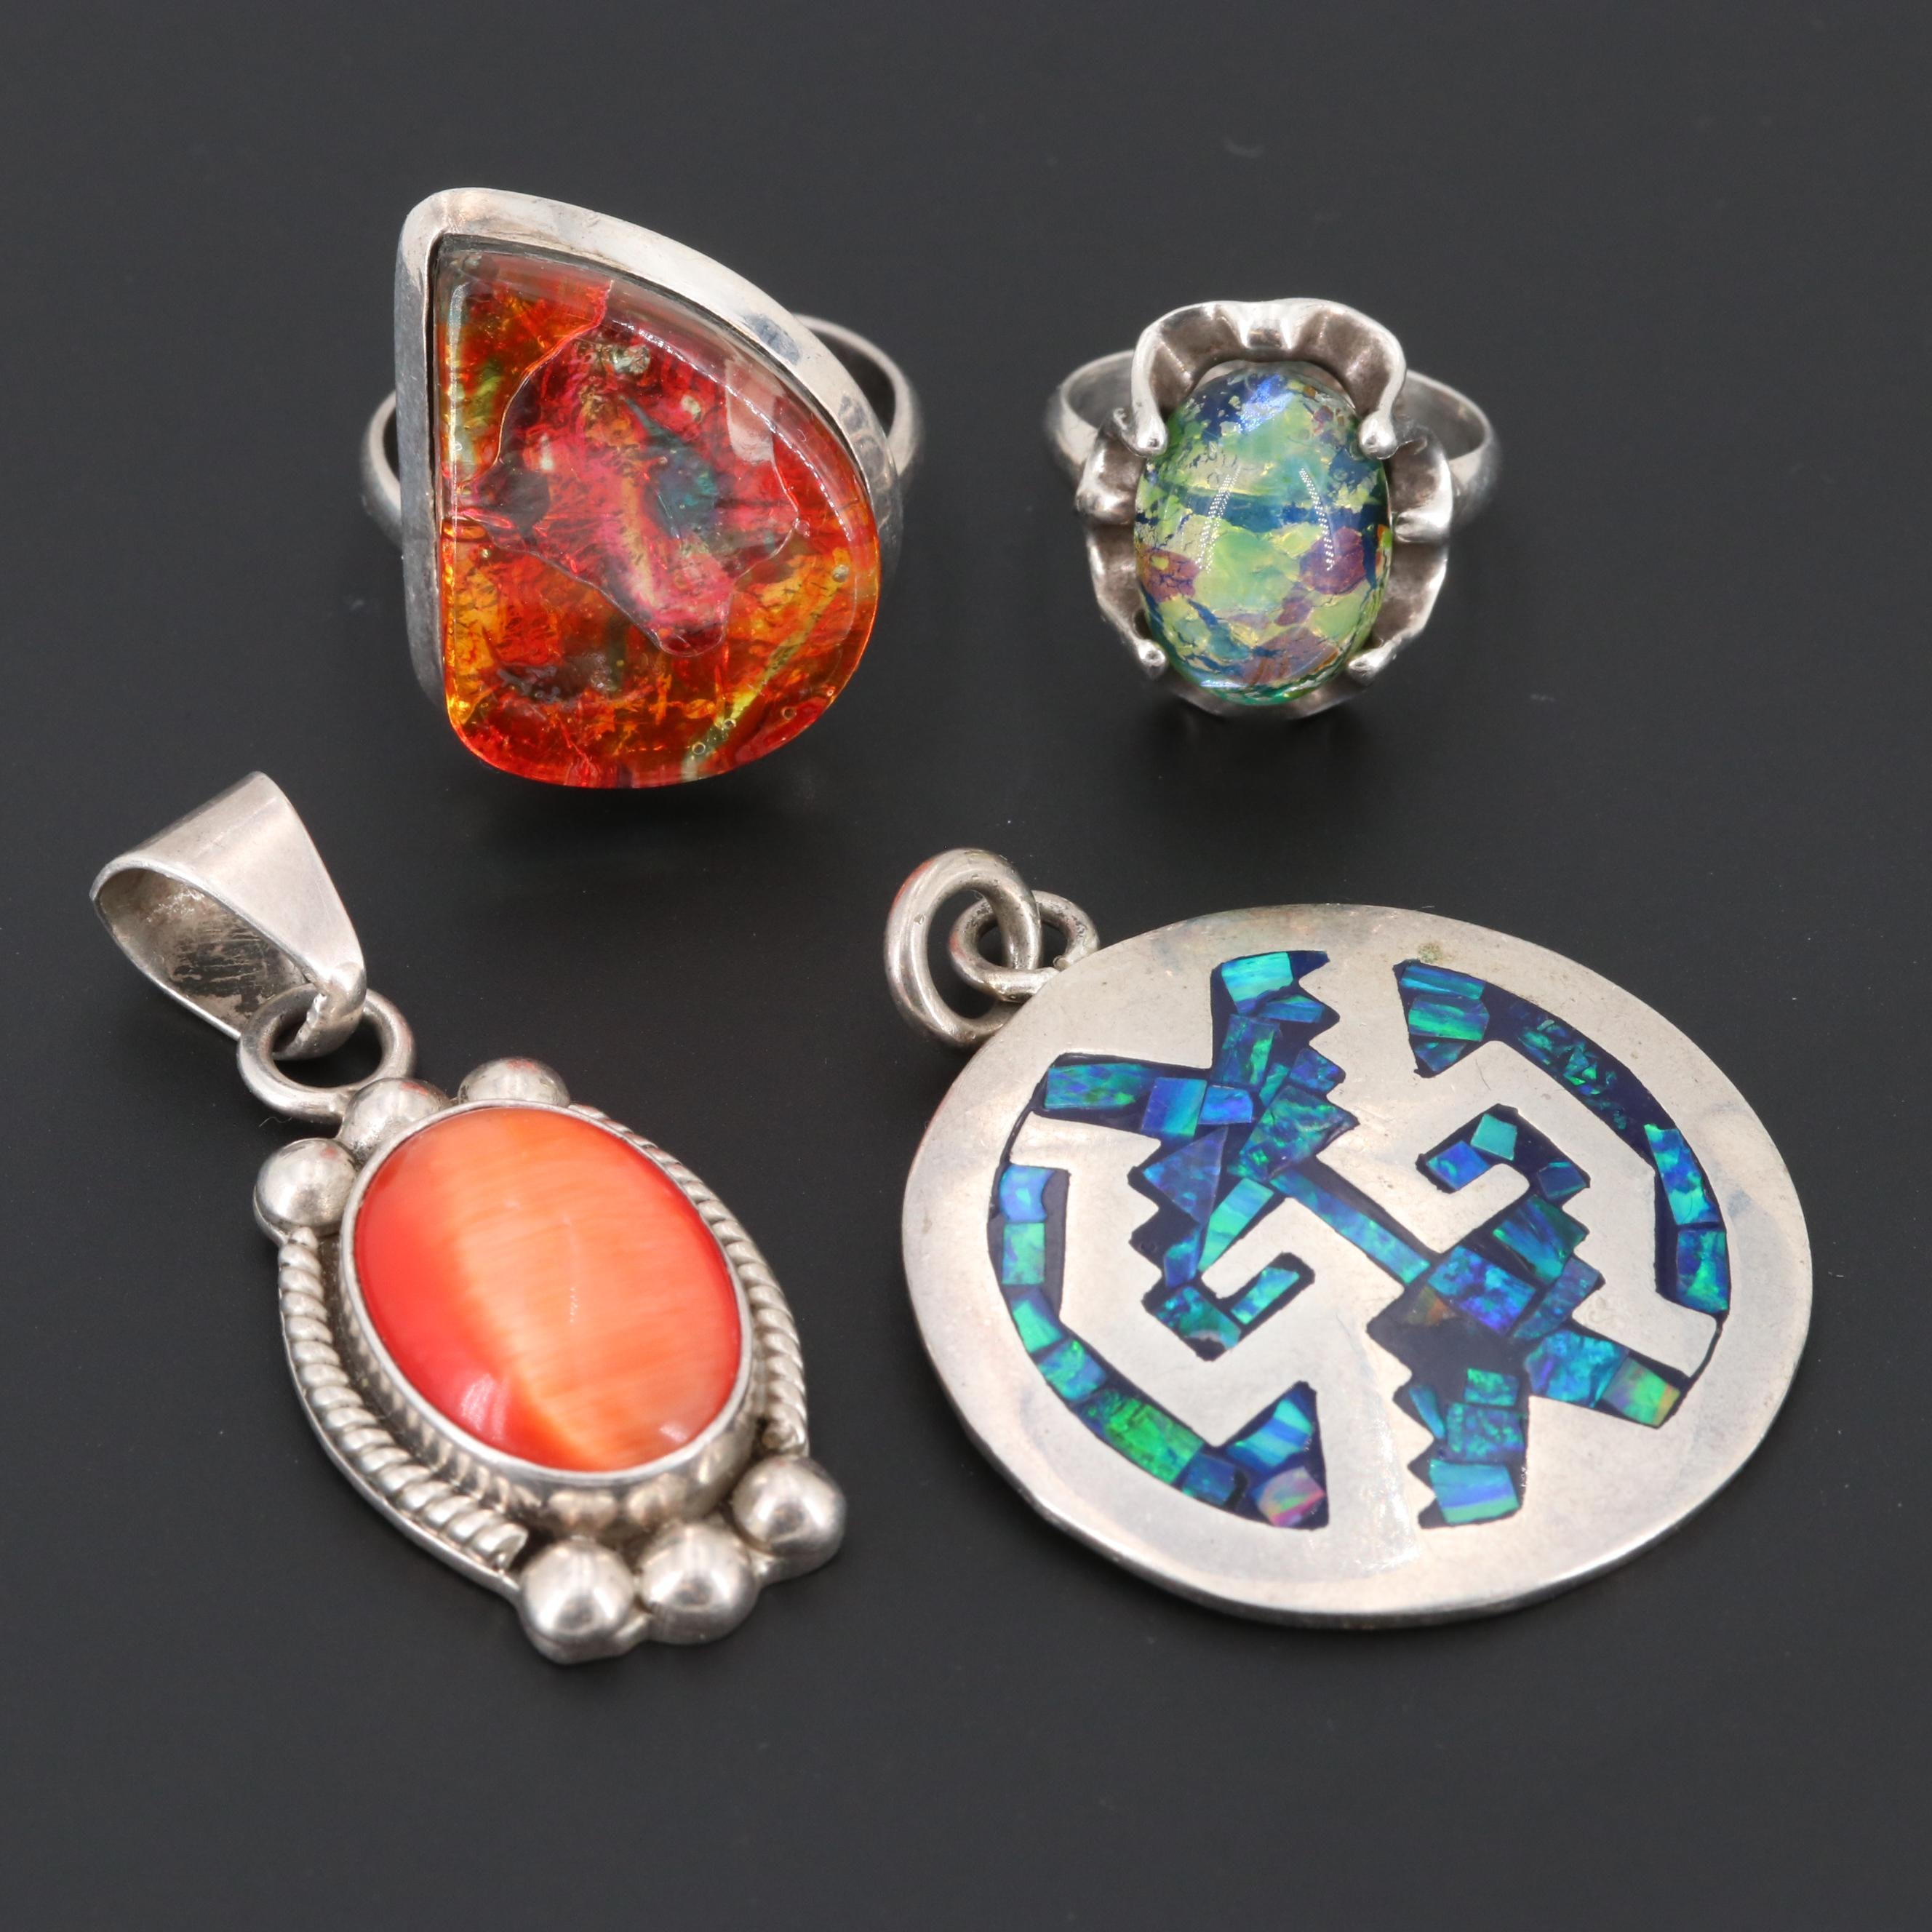 Mexican Rings and Pendant Including Sterling, Glass and Synthetic Opal in Resin